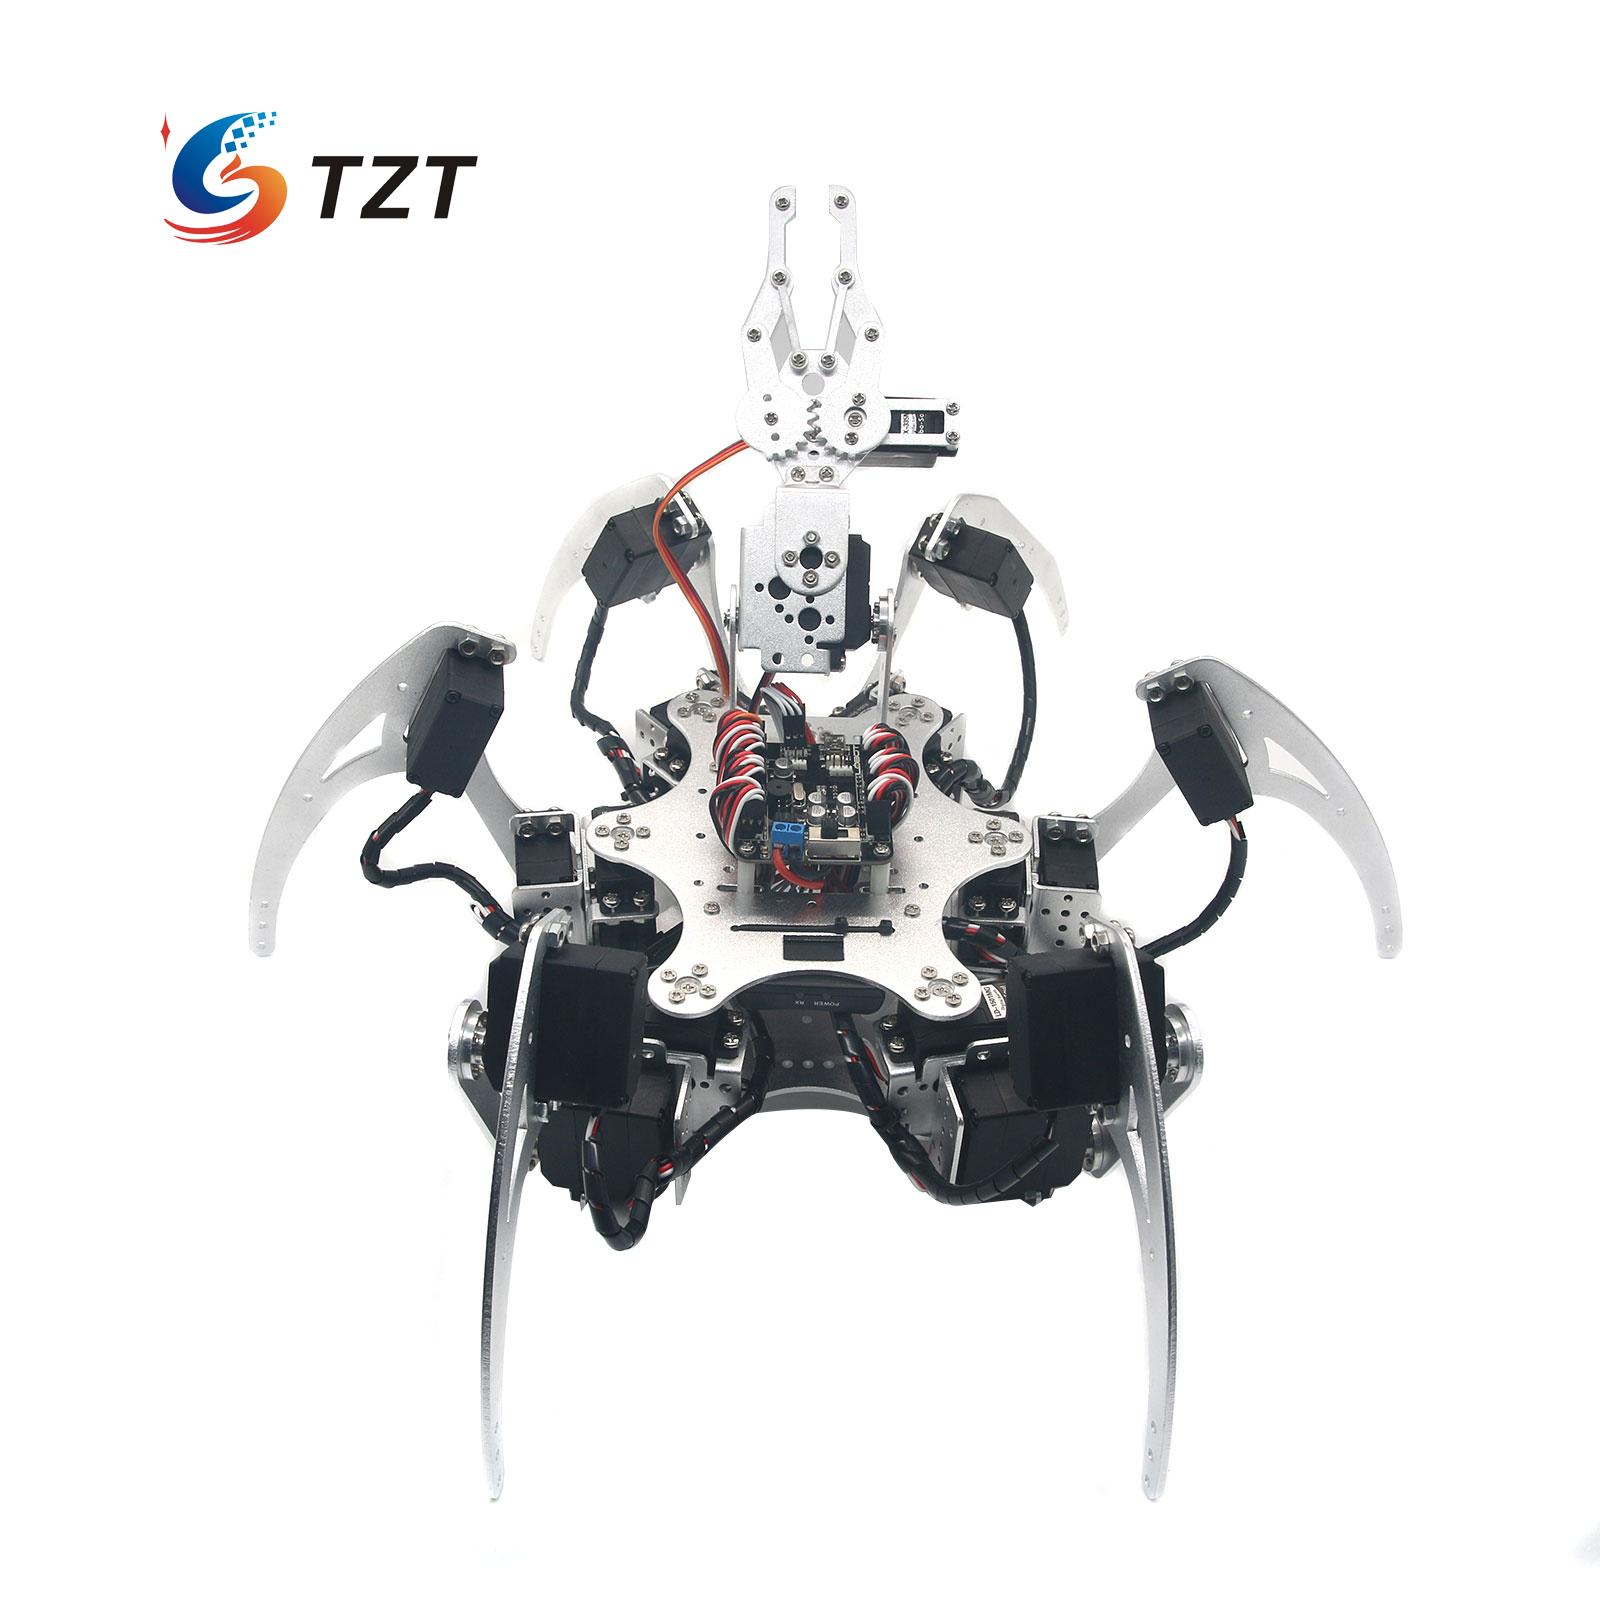 Consumer Electronics Faithful Robo-soul 20dof Aluminium Hexapod Robotic Spider Six Legs Robot With Claw & 20pcs Servos & Controller Year-End Bargain Sale